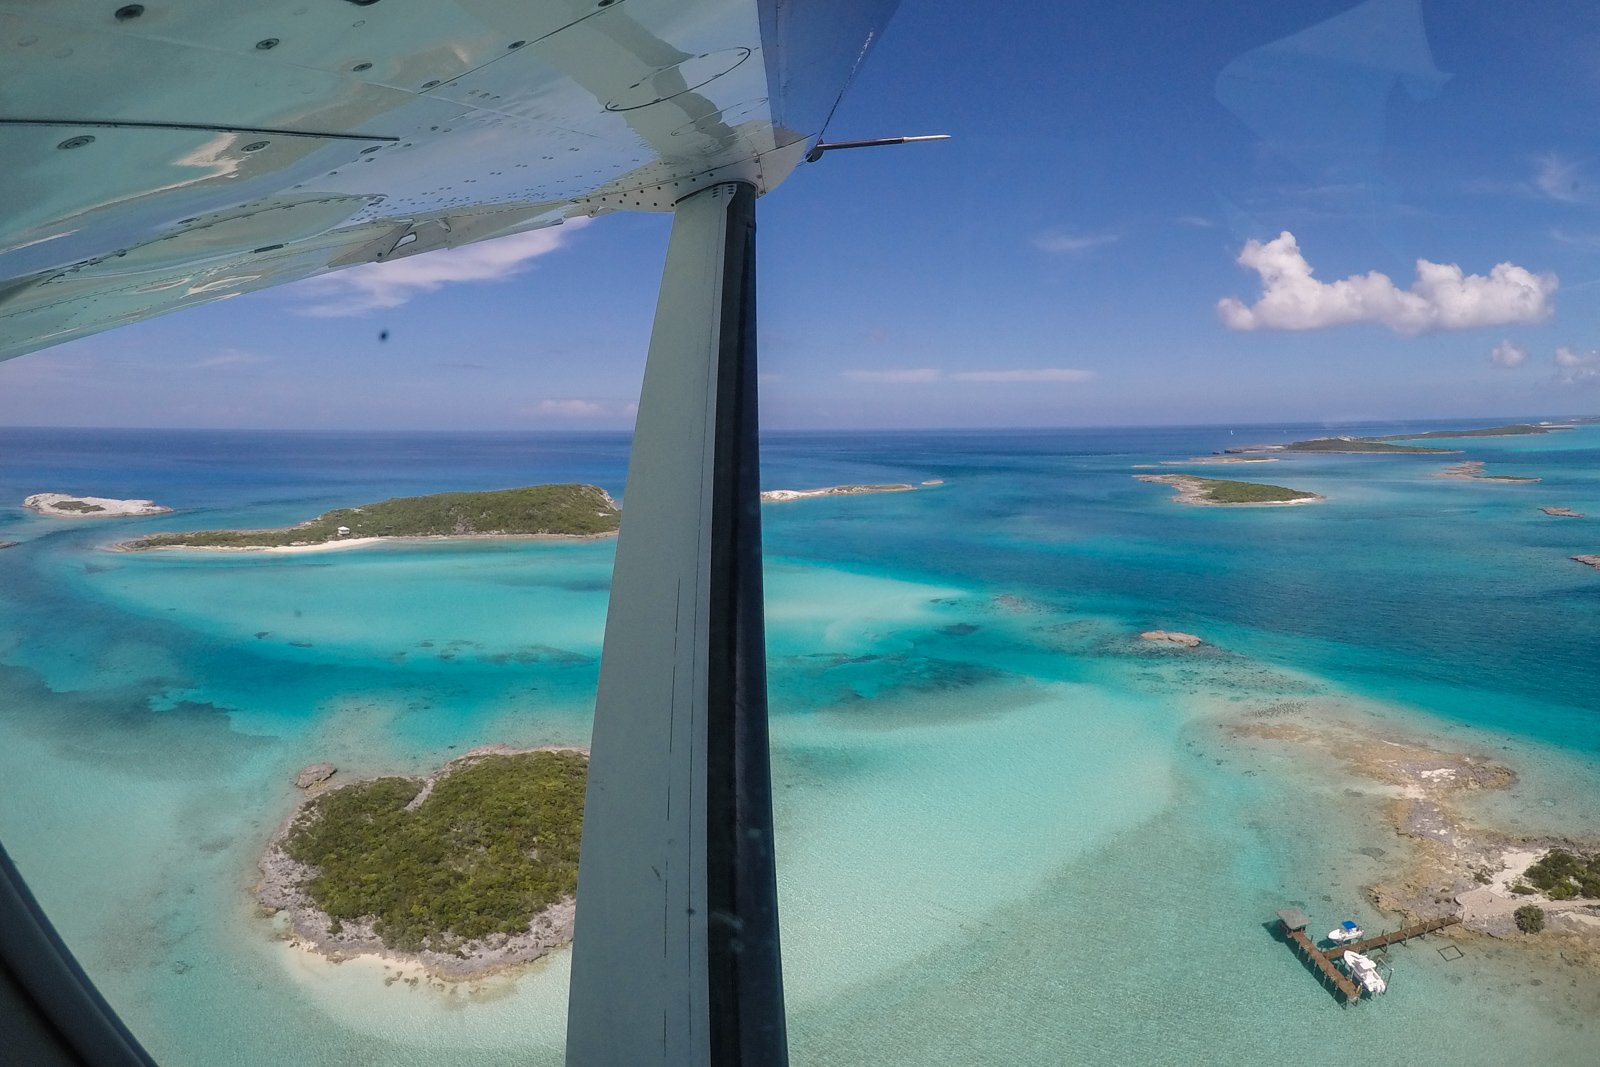 Bahamas Day Trip to Pig Beach at Big Major Cay flying from Nassau and MIami with Bahamas Air Tours.